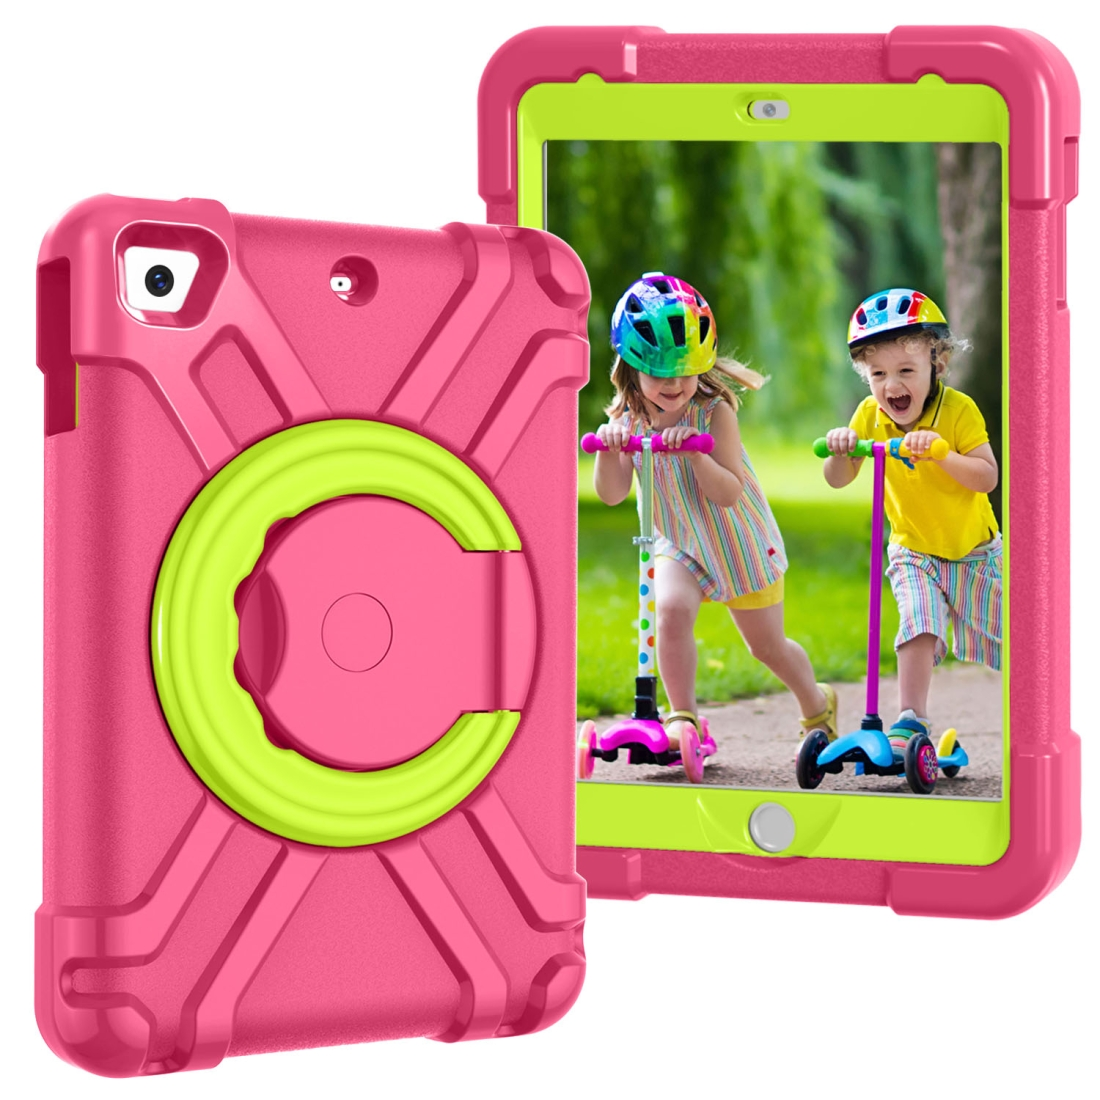 iPad Mini Case For Kids, Fits iPad Mini & Mini 2 & 3, Durable Protective Case (Rose Red/Grass Green)